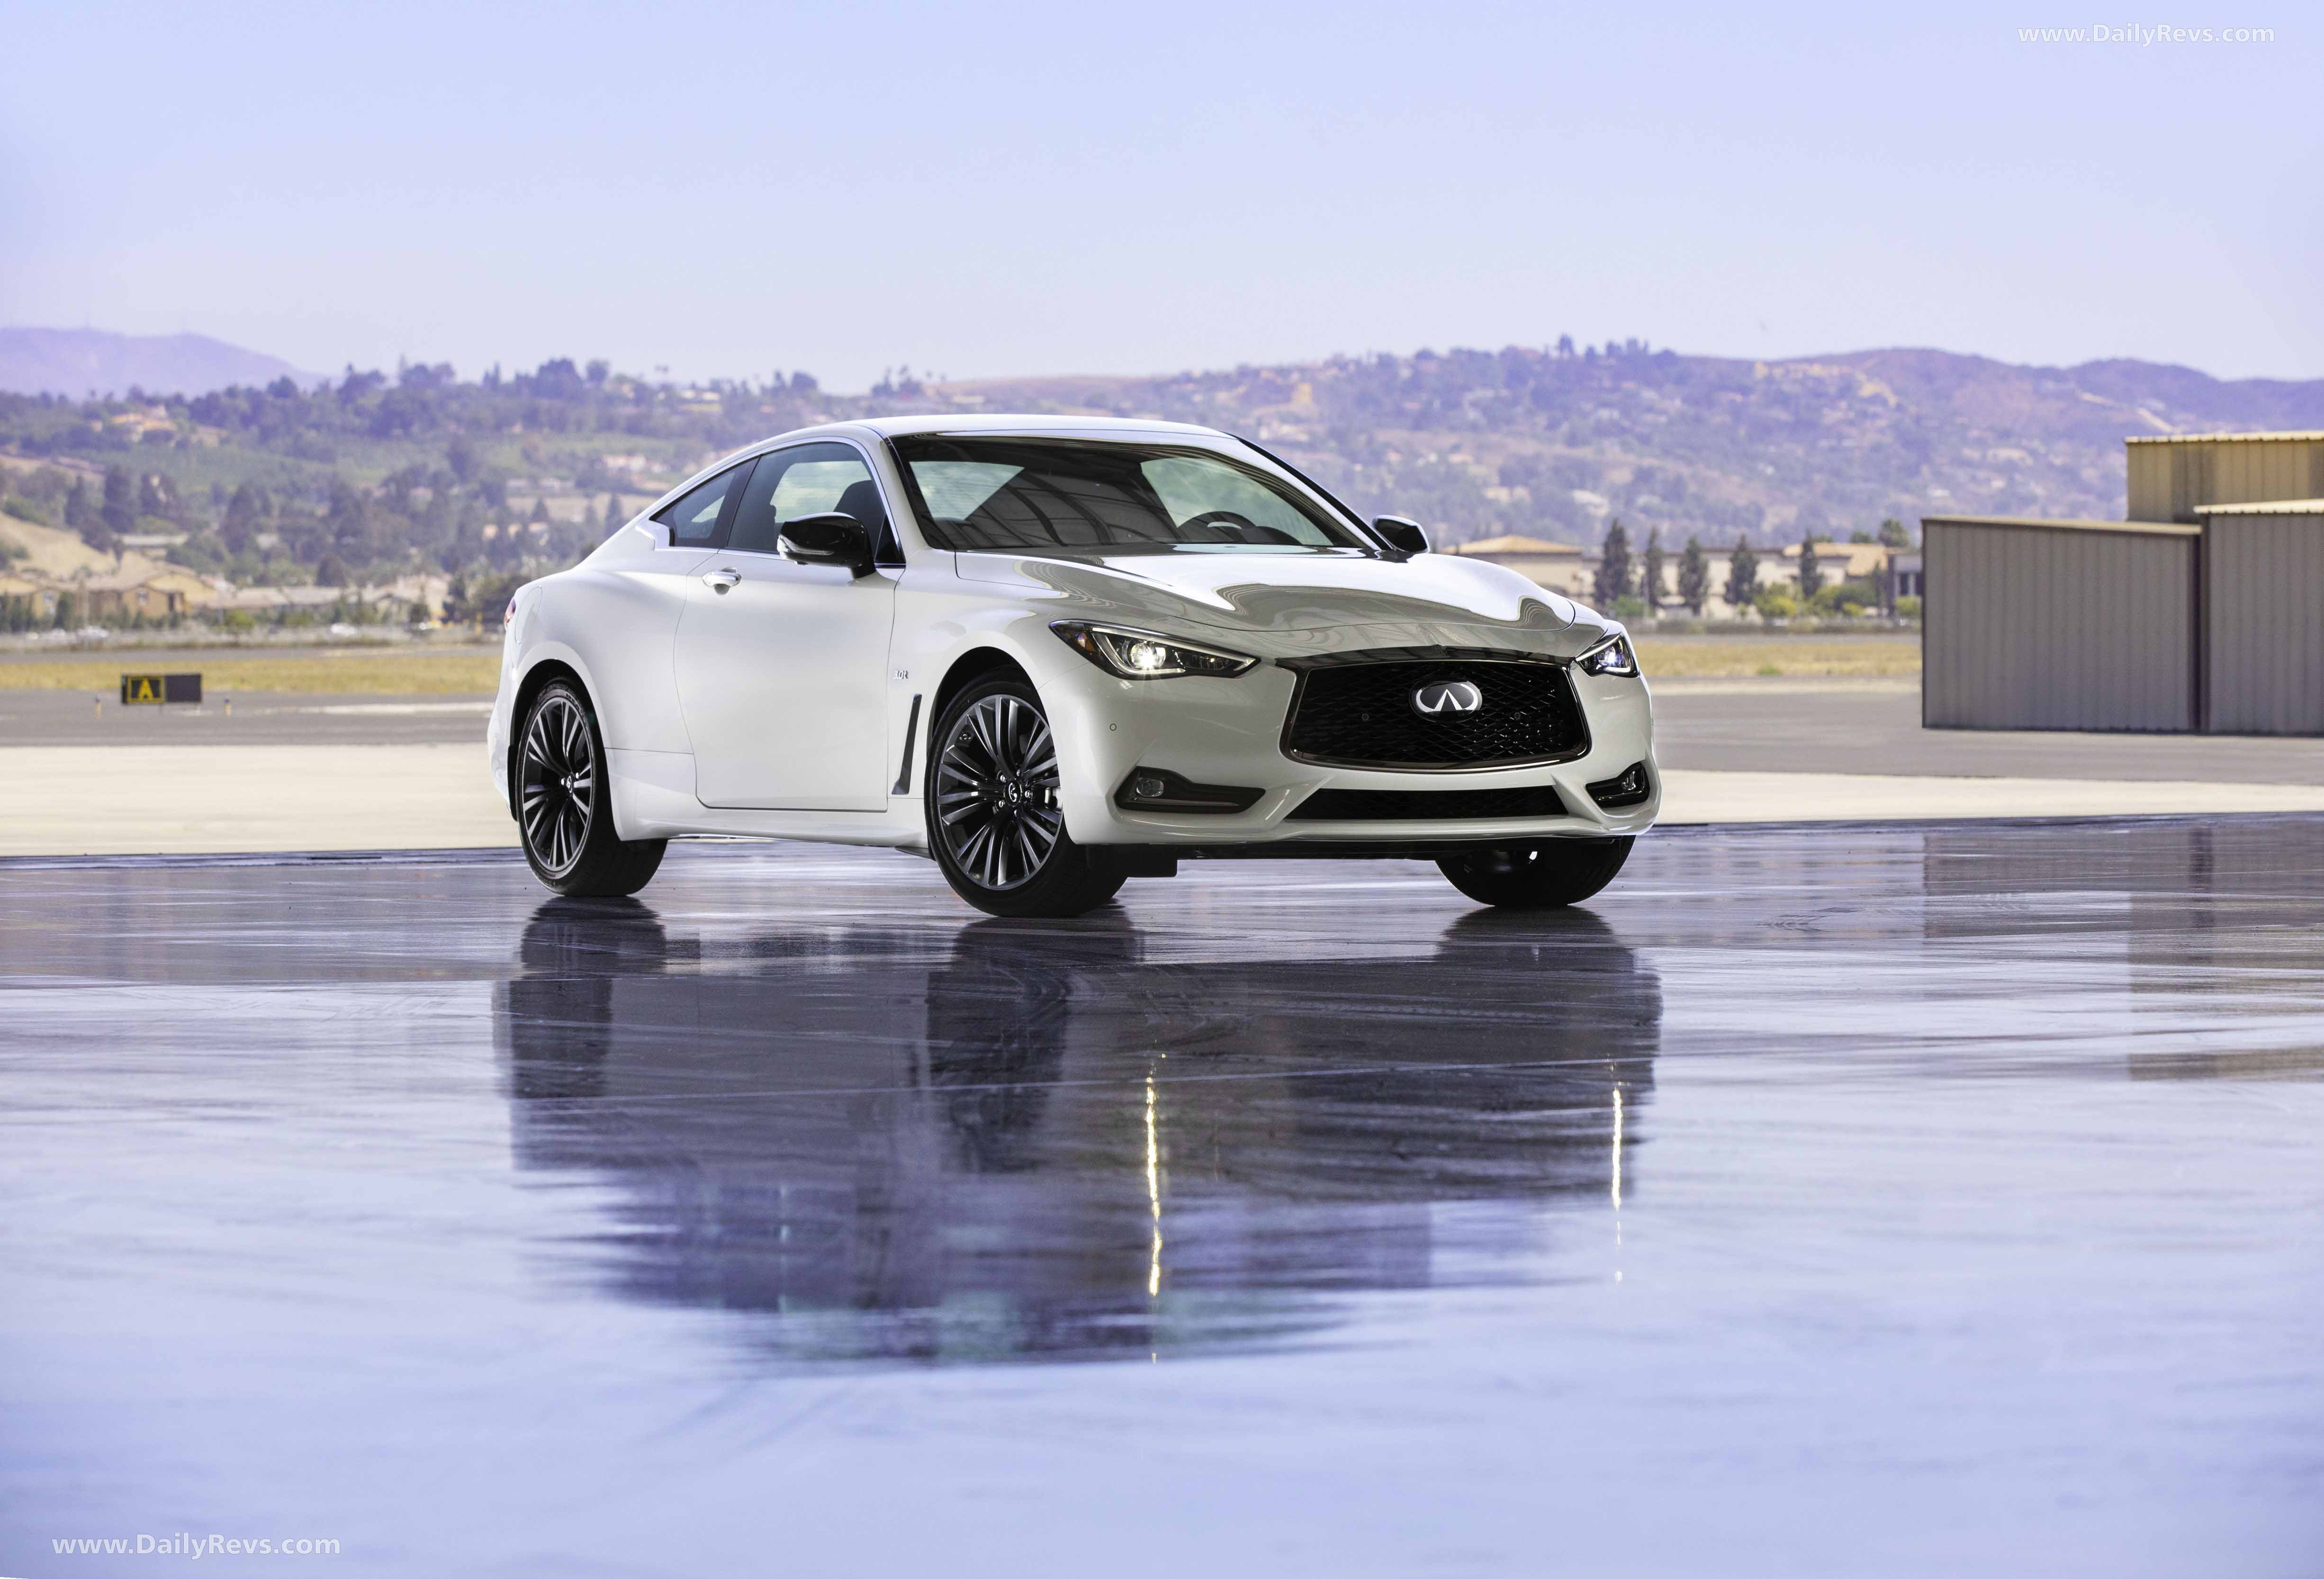 2020 Infiniti Q60 Edition 30 Hd Pictures Specs Informations Videos Dailyrevs